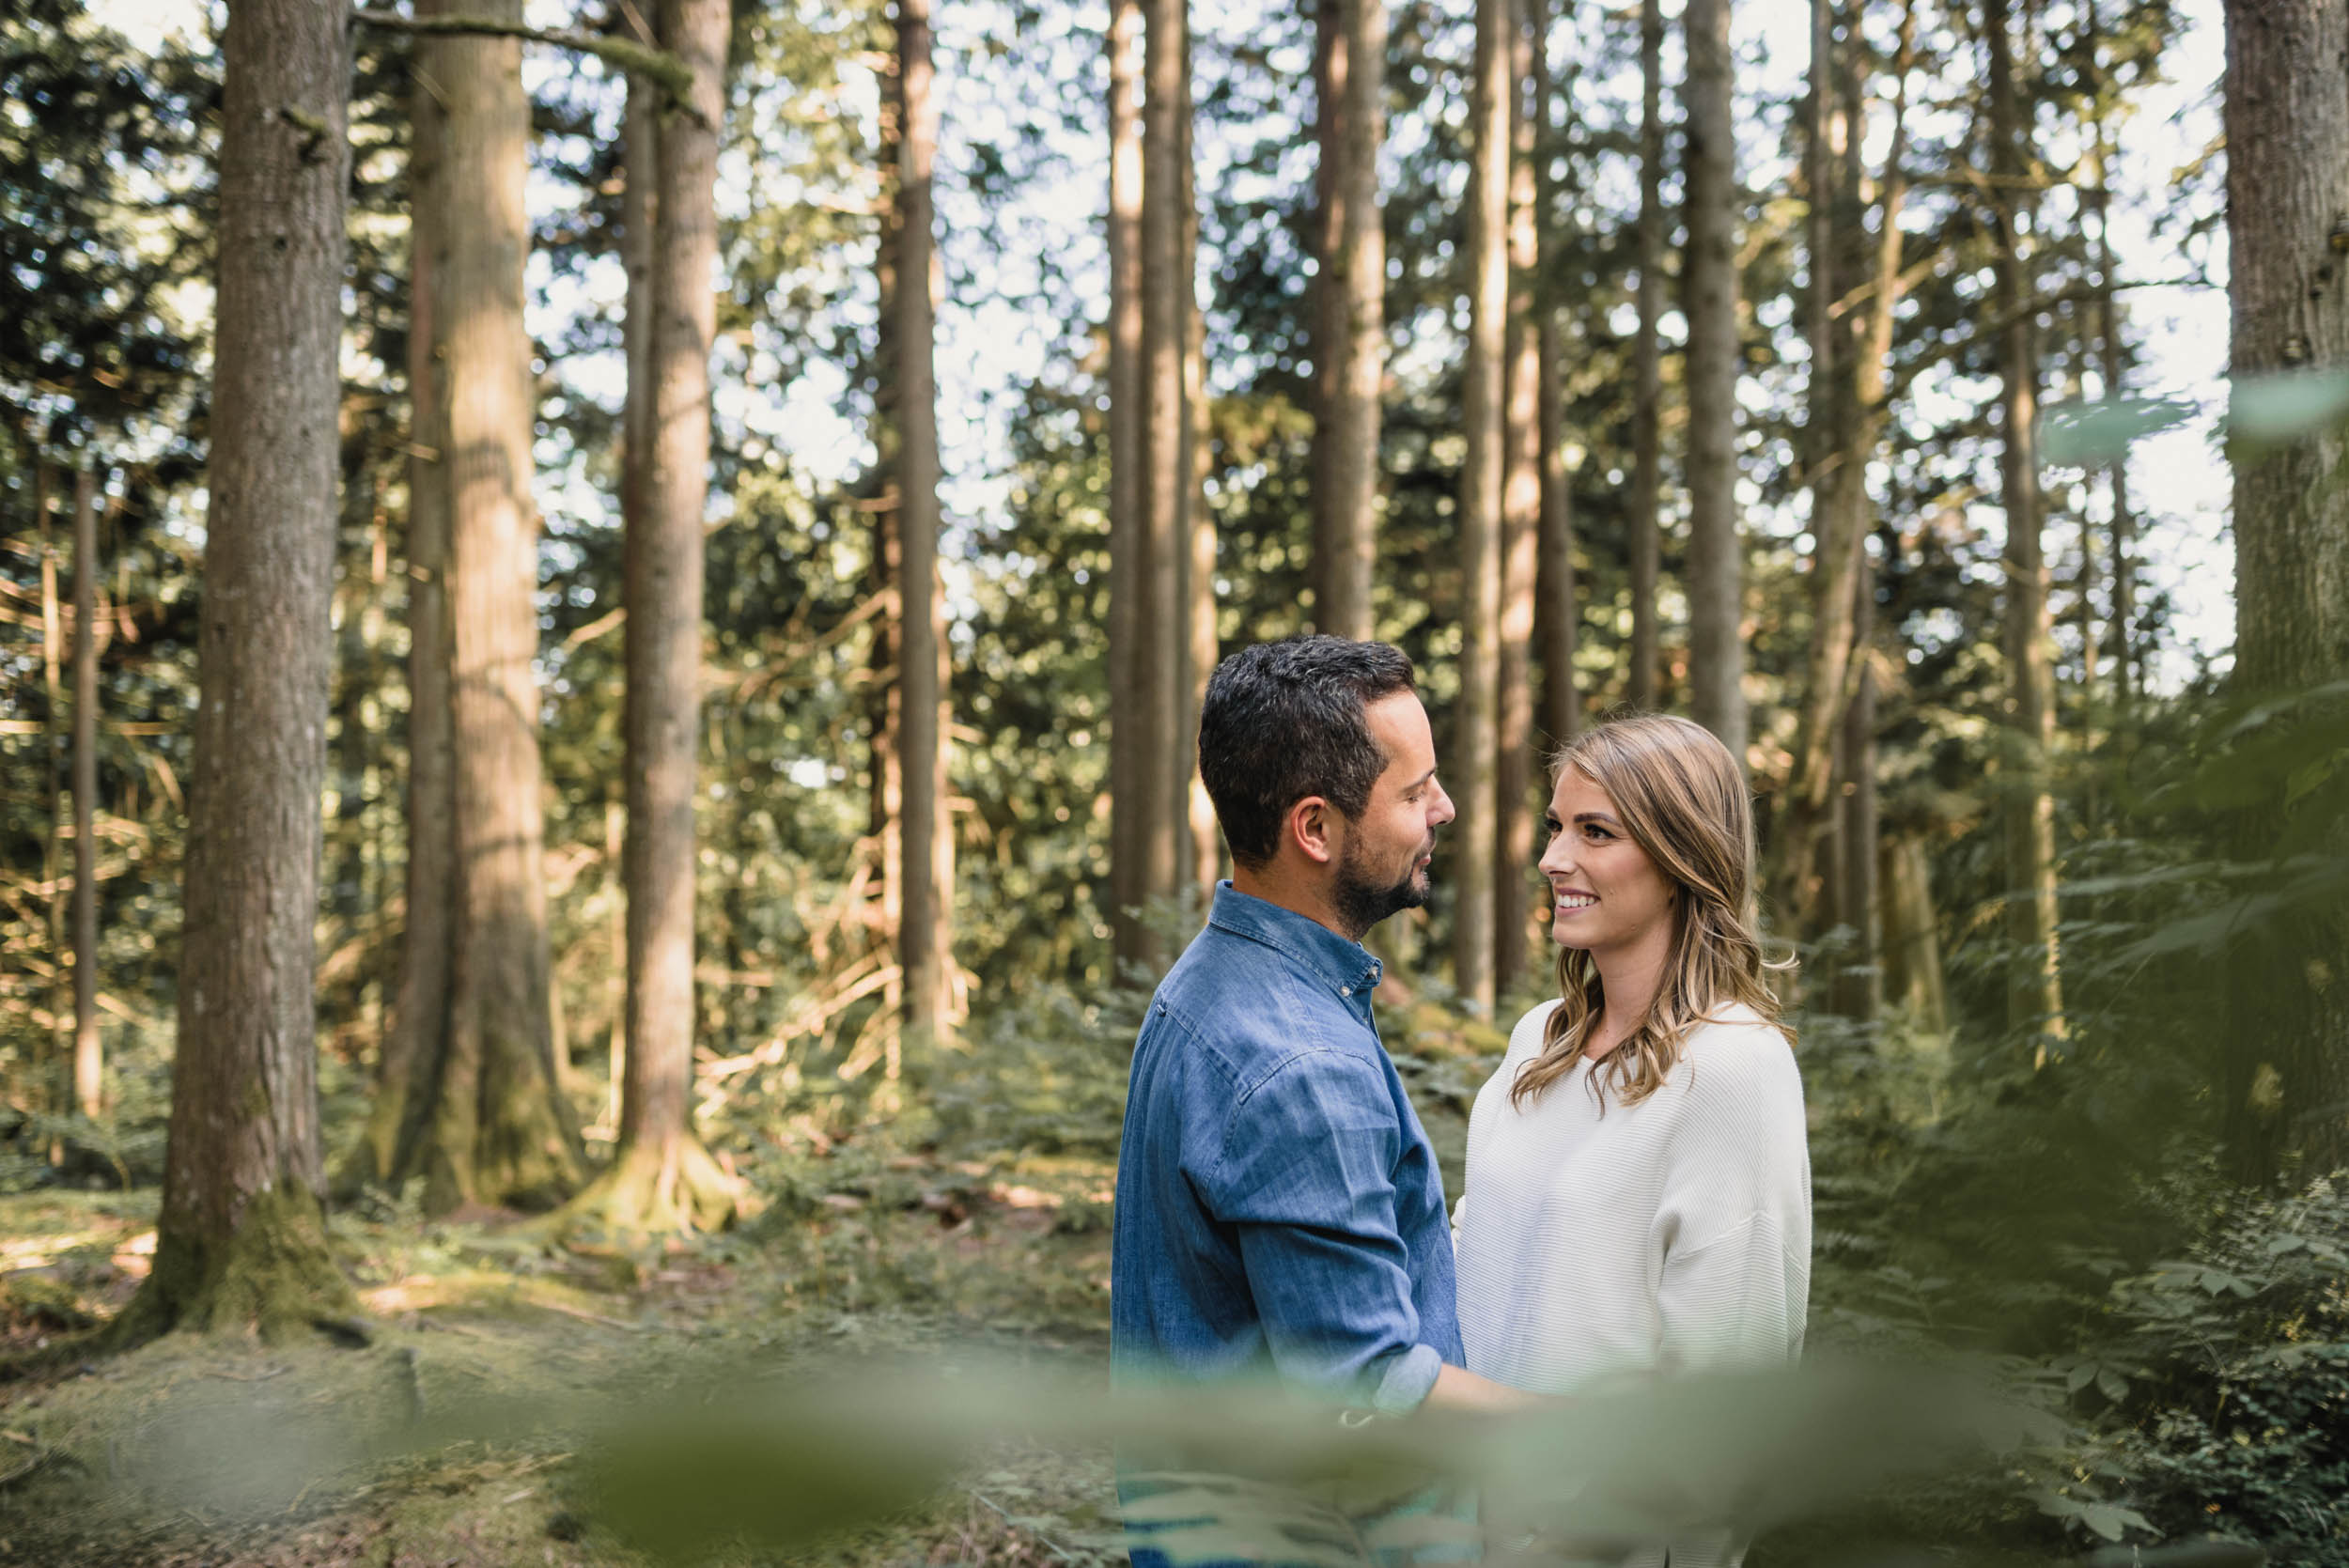 Couple smiling together in forest foliage